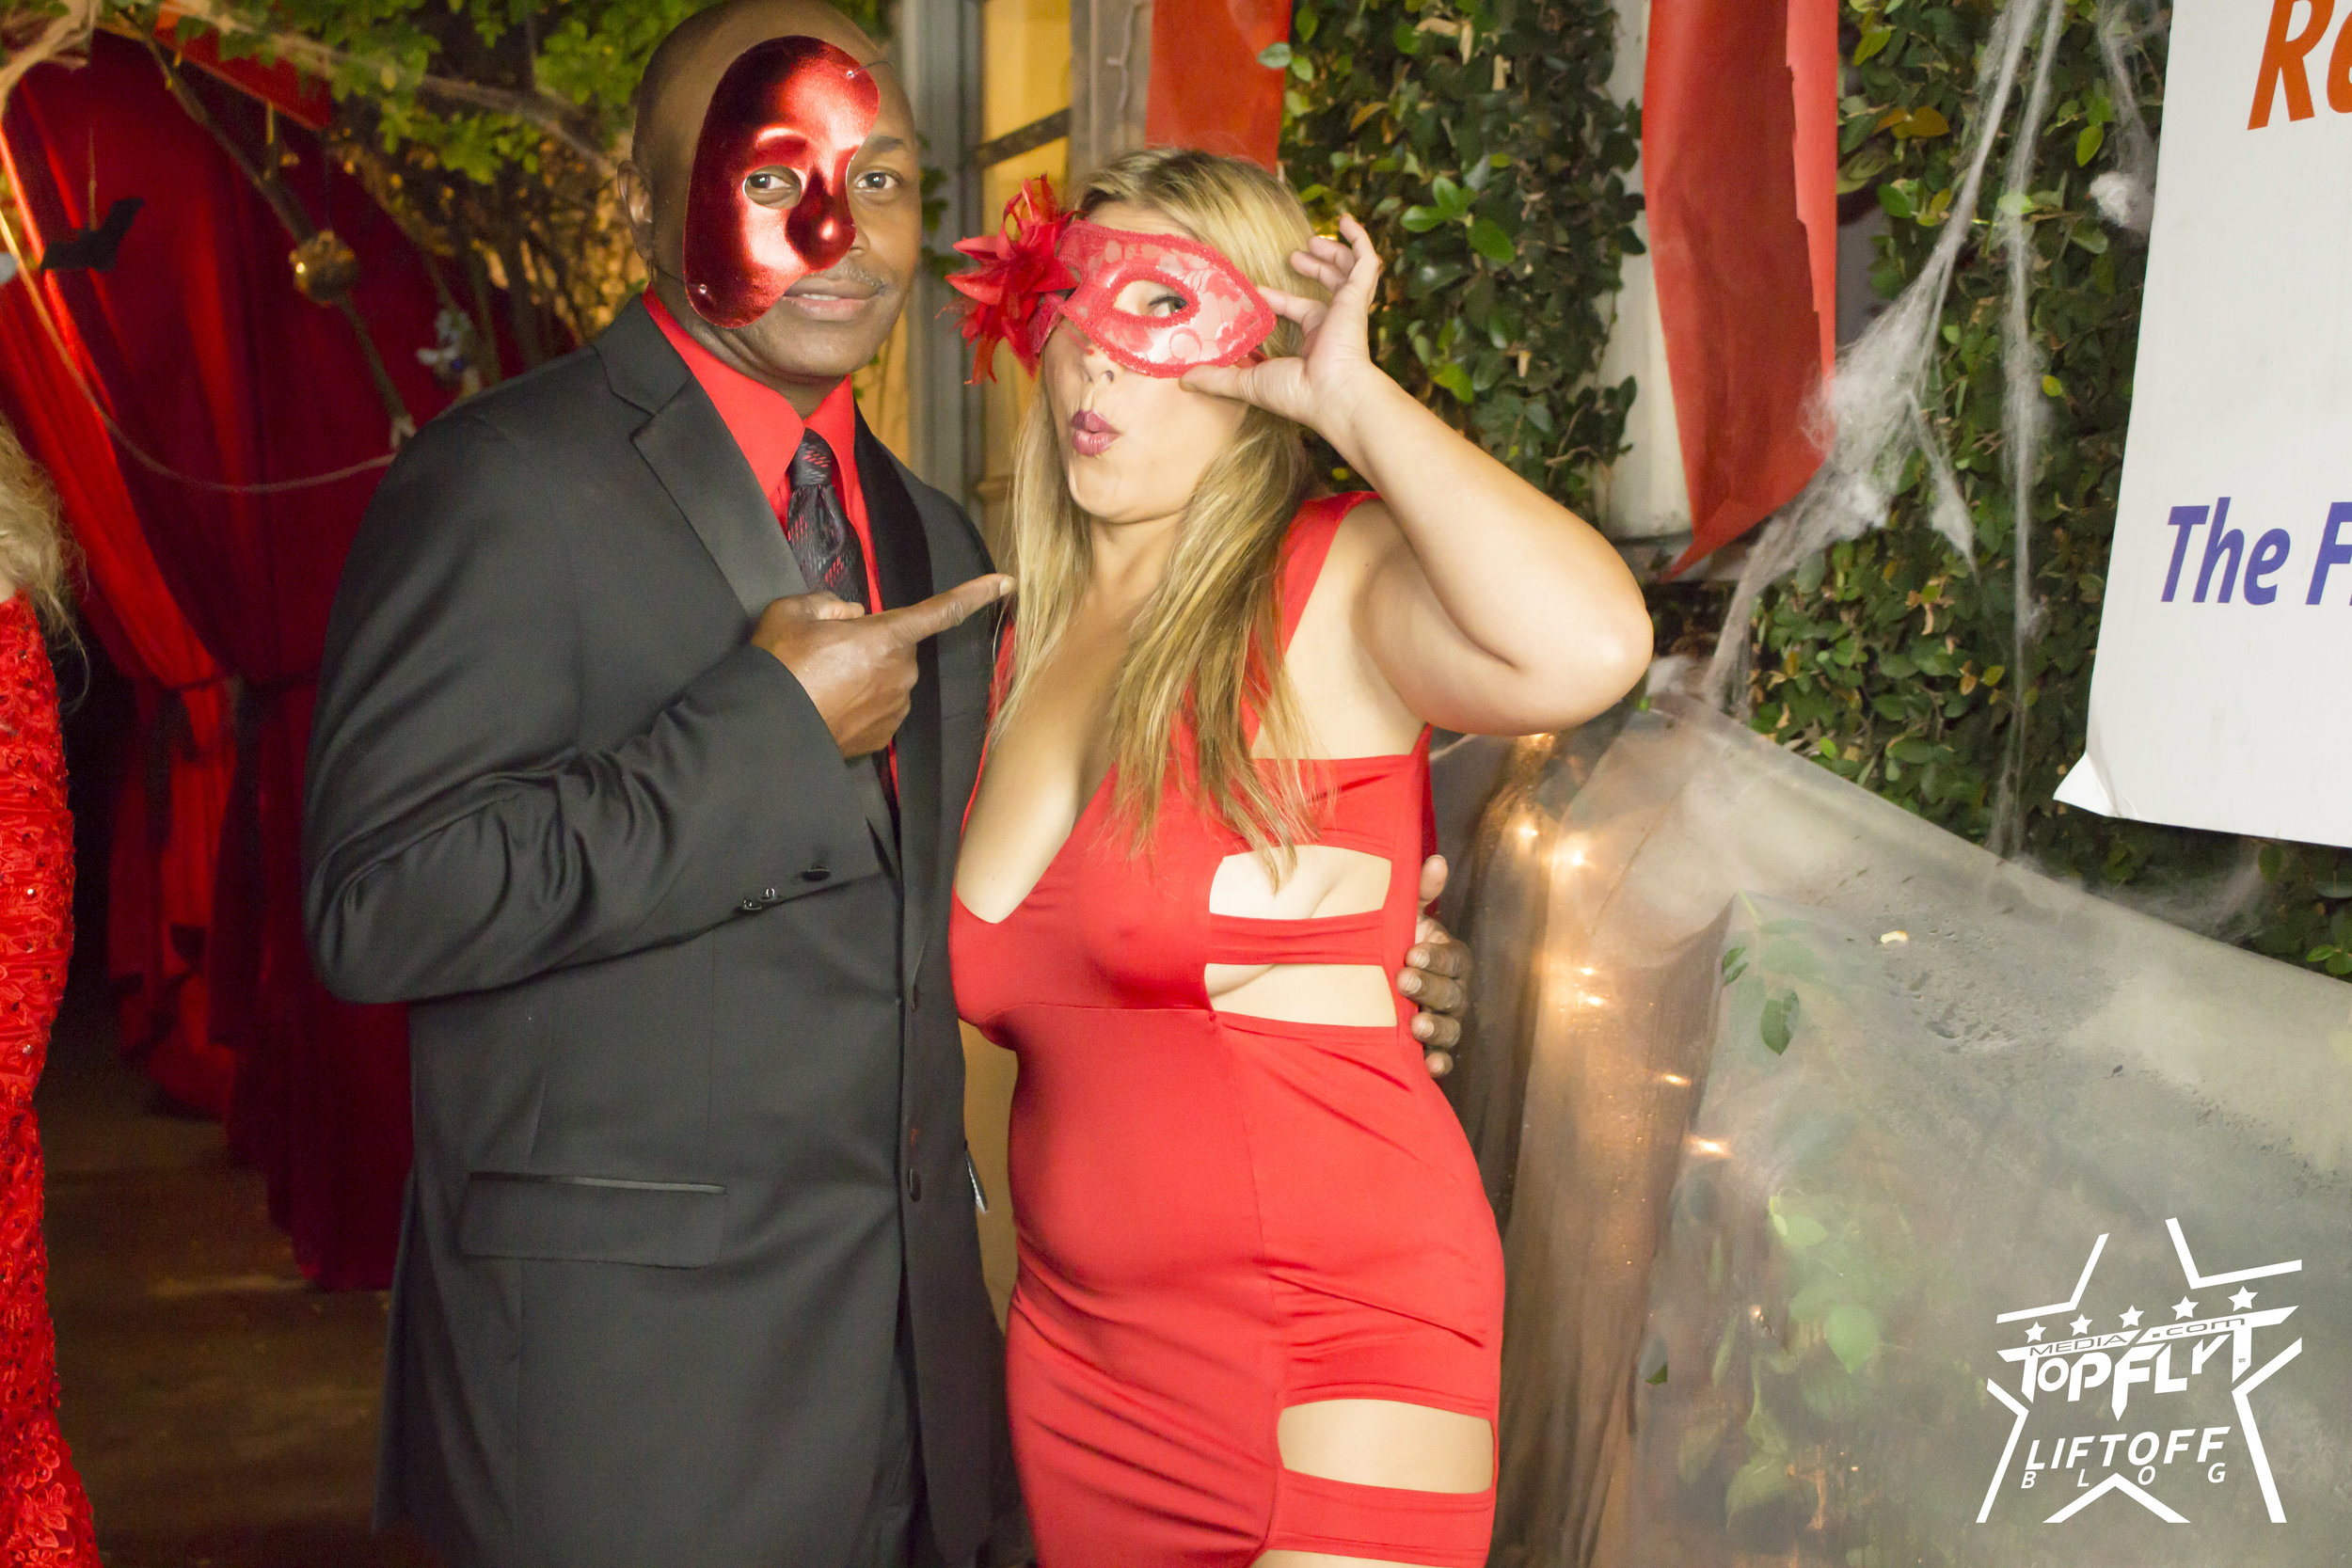 Networth Connection - Masquerade Party_22.jpg